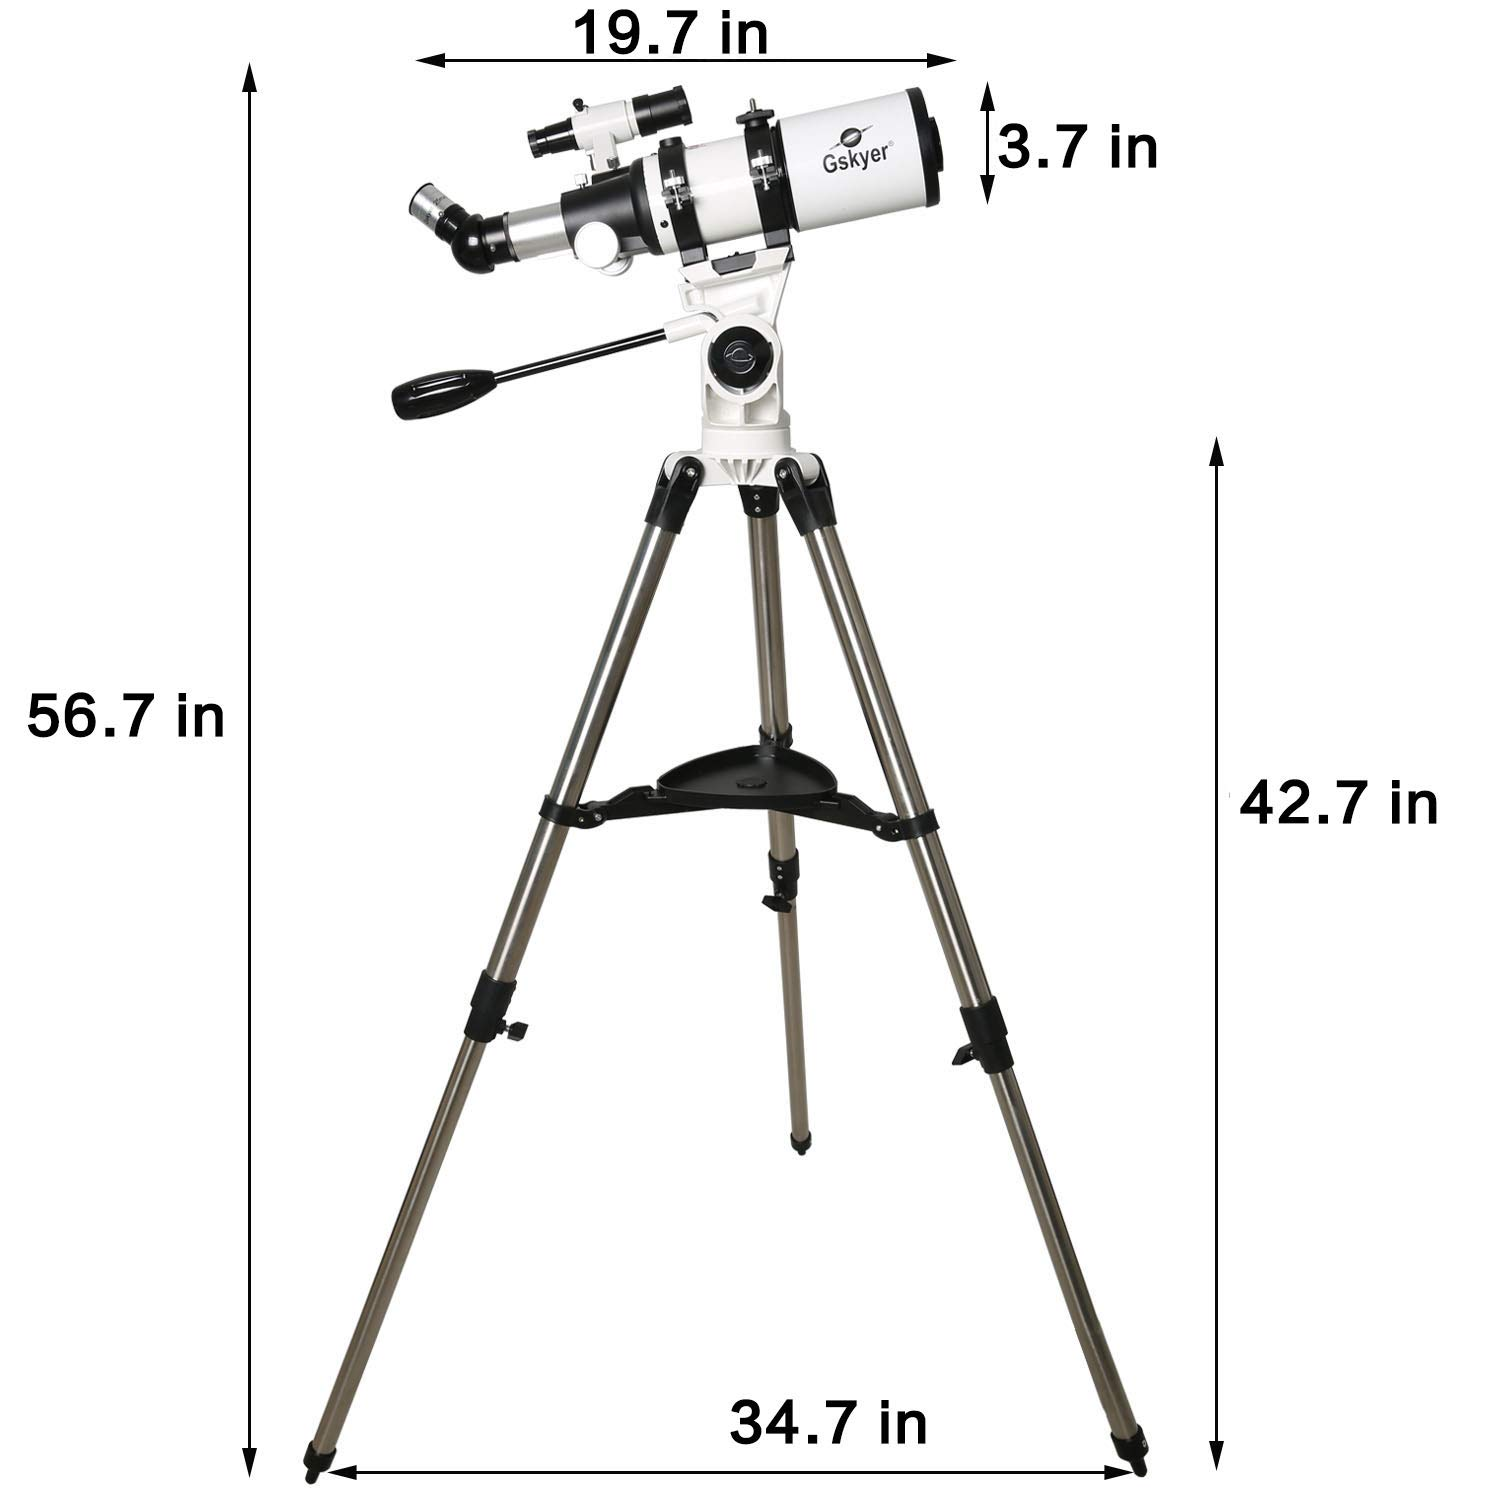 Gskyer Telescope, 80mm AZ Space Astronomical Refractor Telescope, German Technology Scope by Gskyer